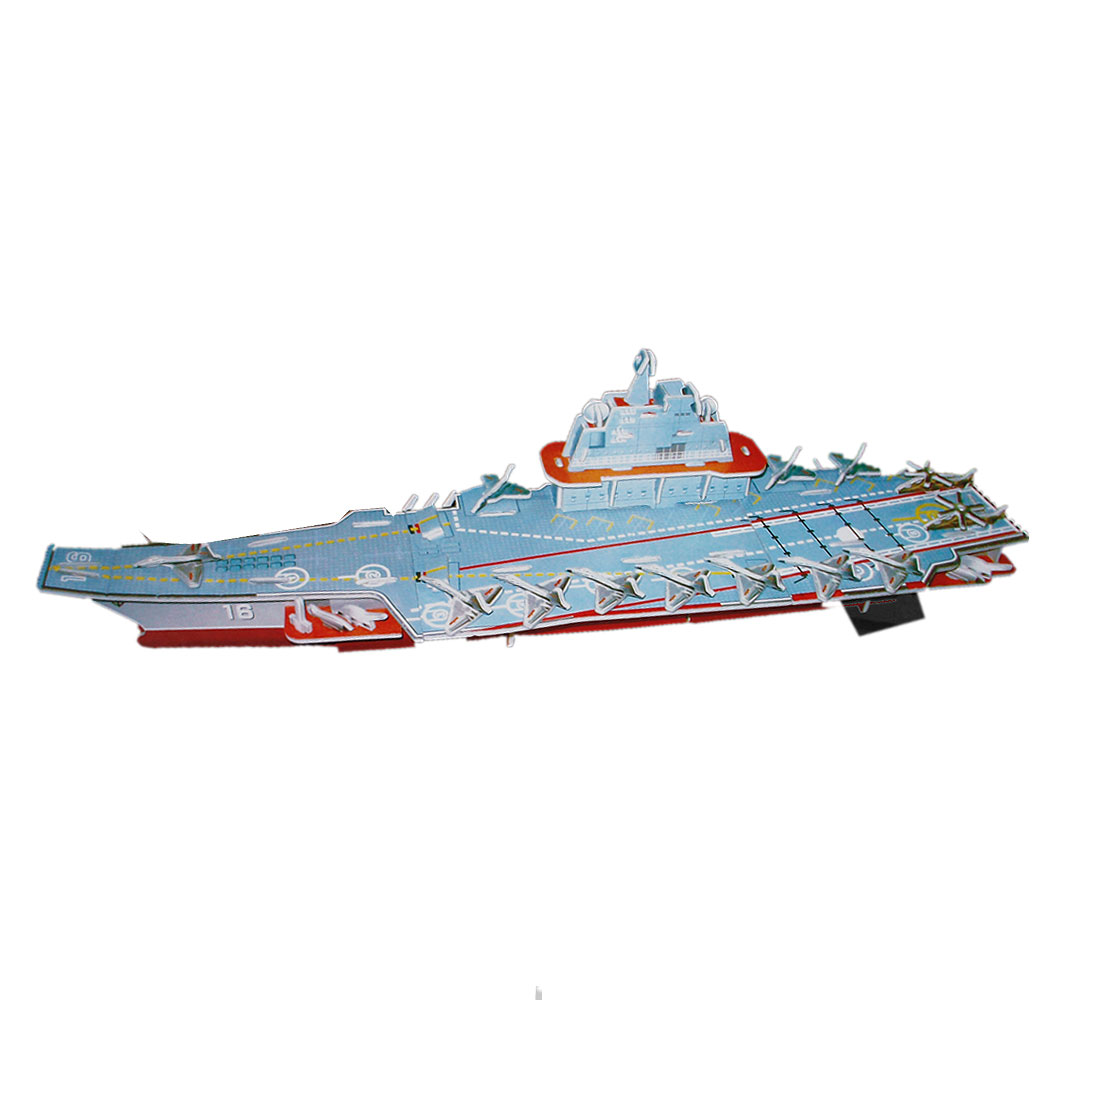 Child Technological Liaoning Aircraft Carrier 3D Model Puzzles Toy 4 Sheets